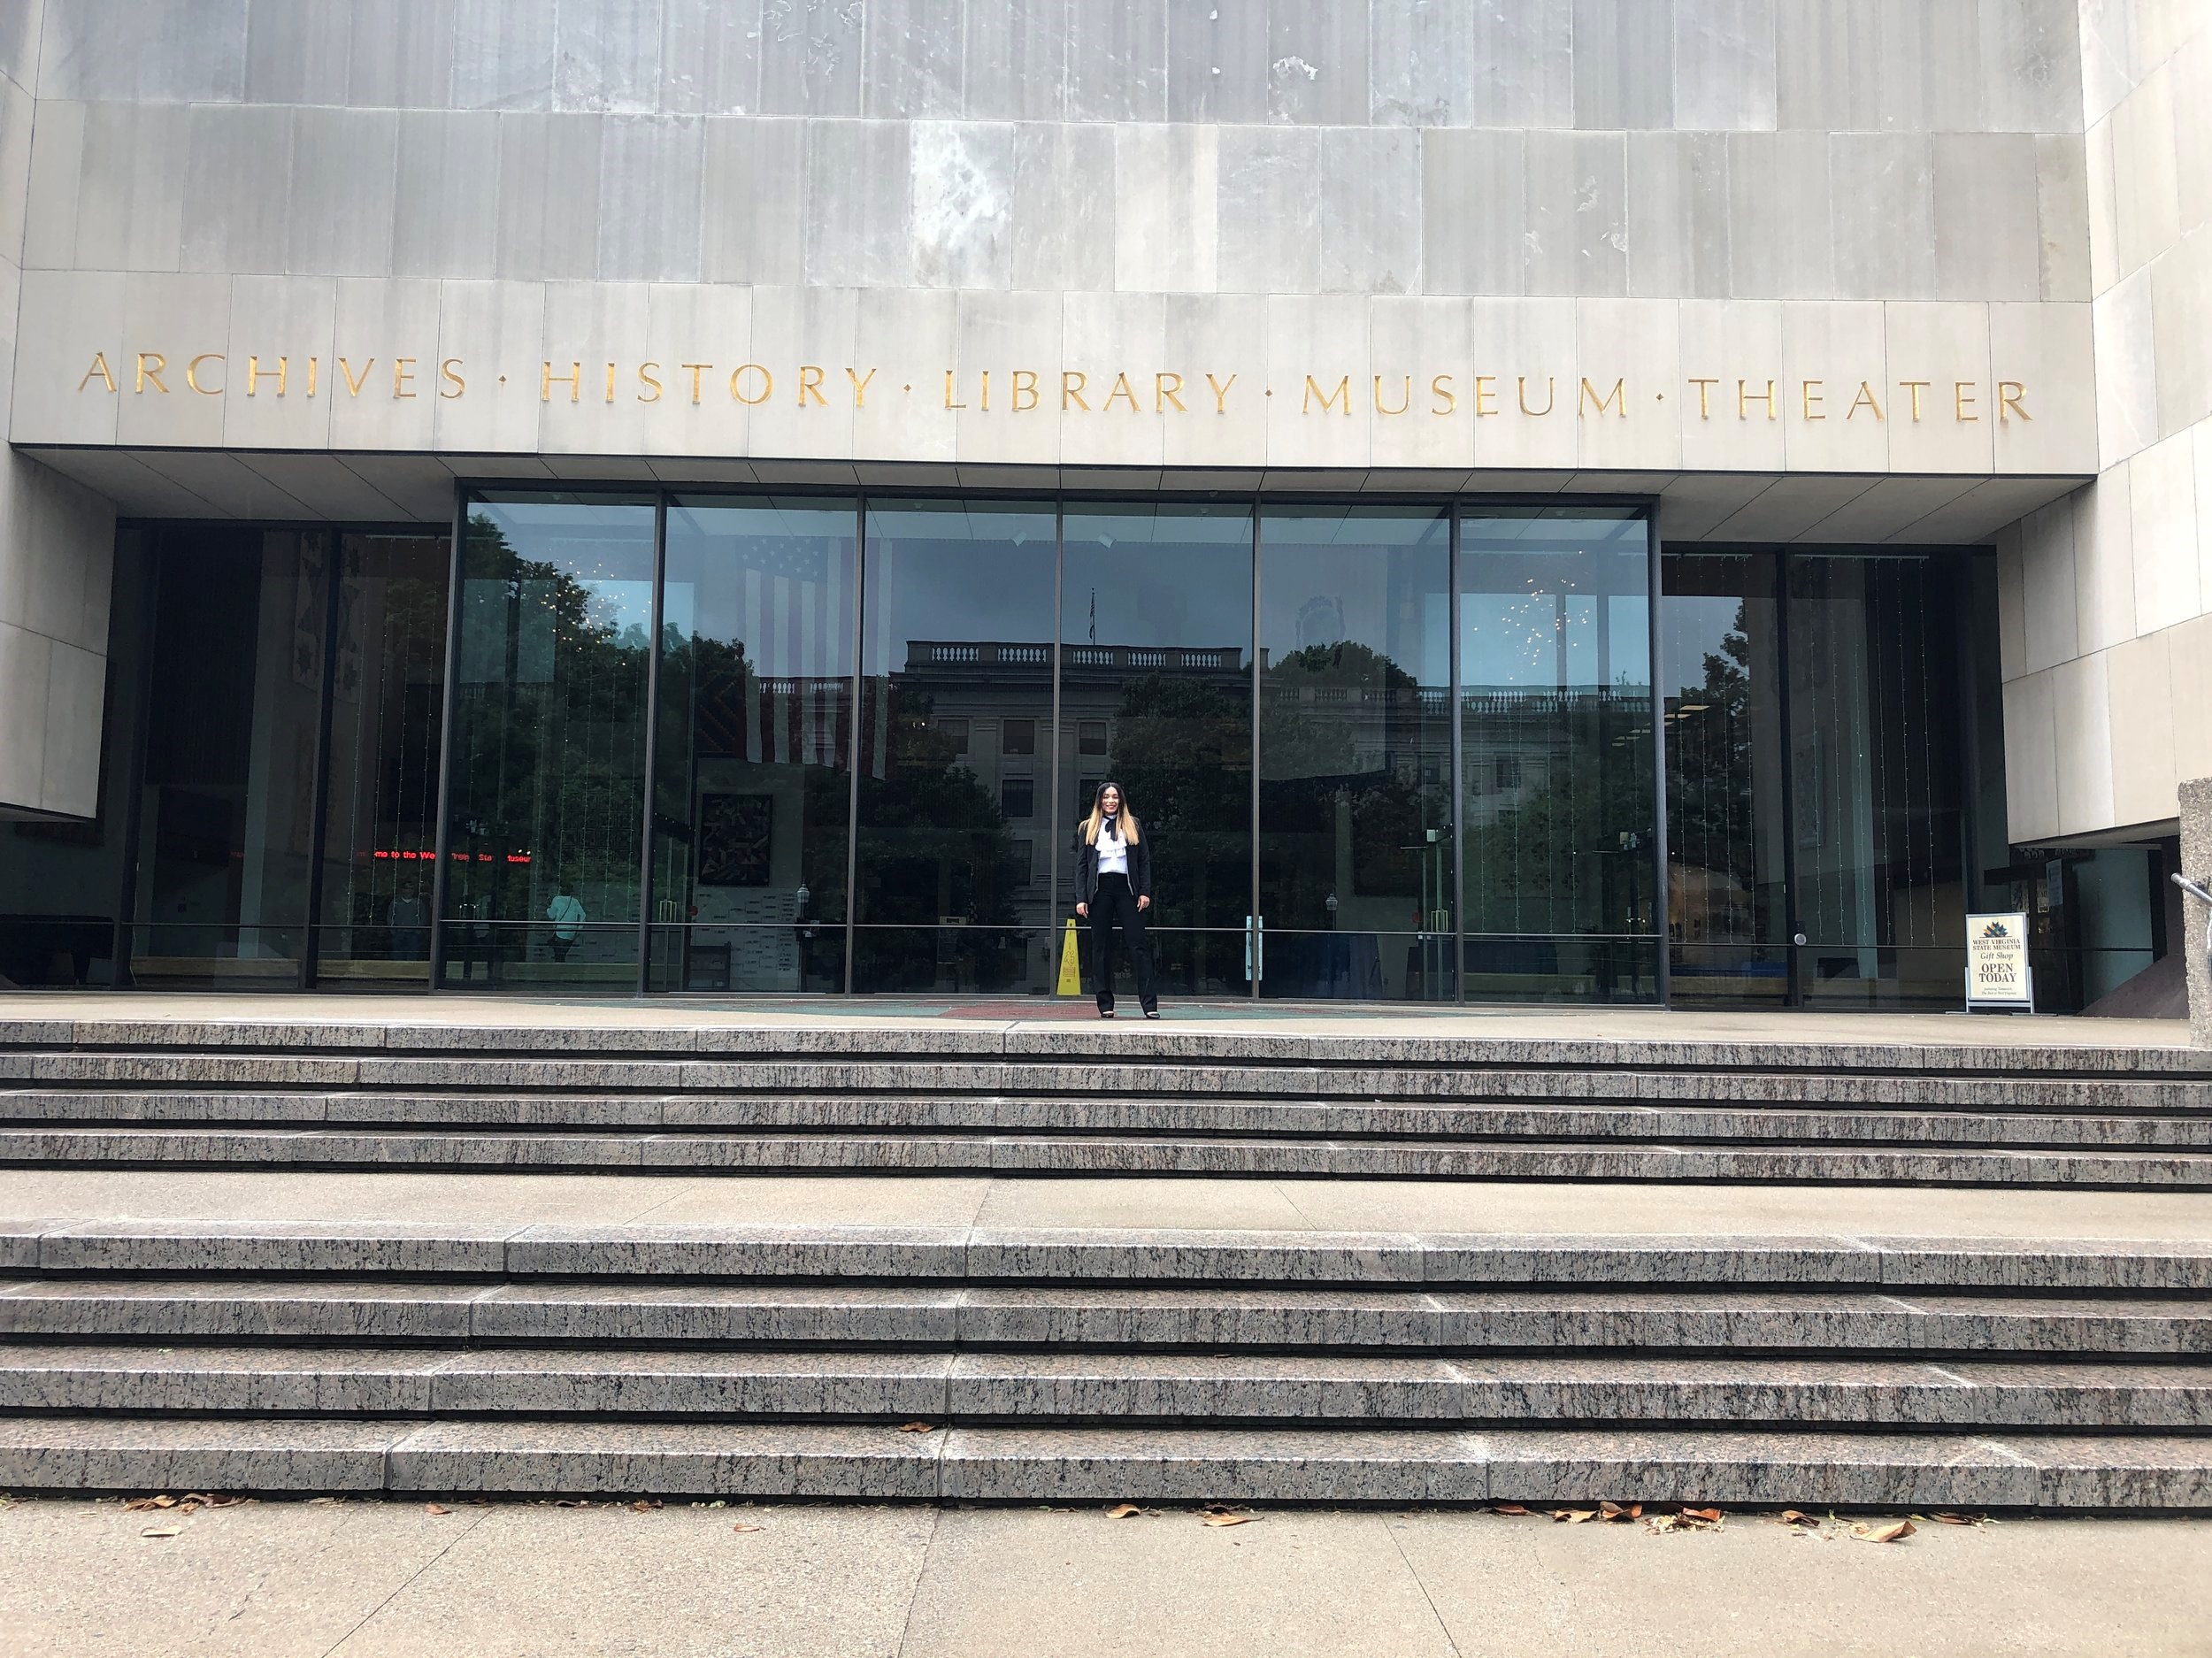 Dr. Mo on the steps of the West Virginia State's Archives * History * Library * Museum * Library at the Capitol, Charleston, West Virginia. May 11, 2019.